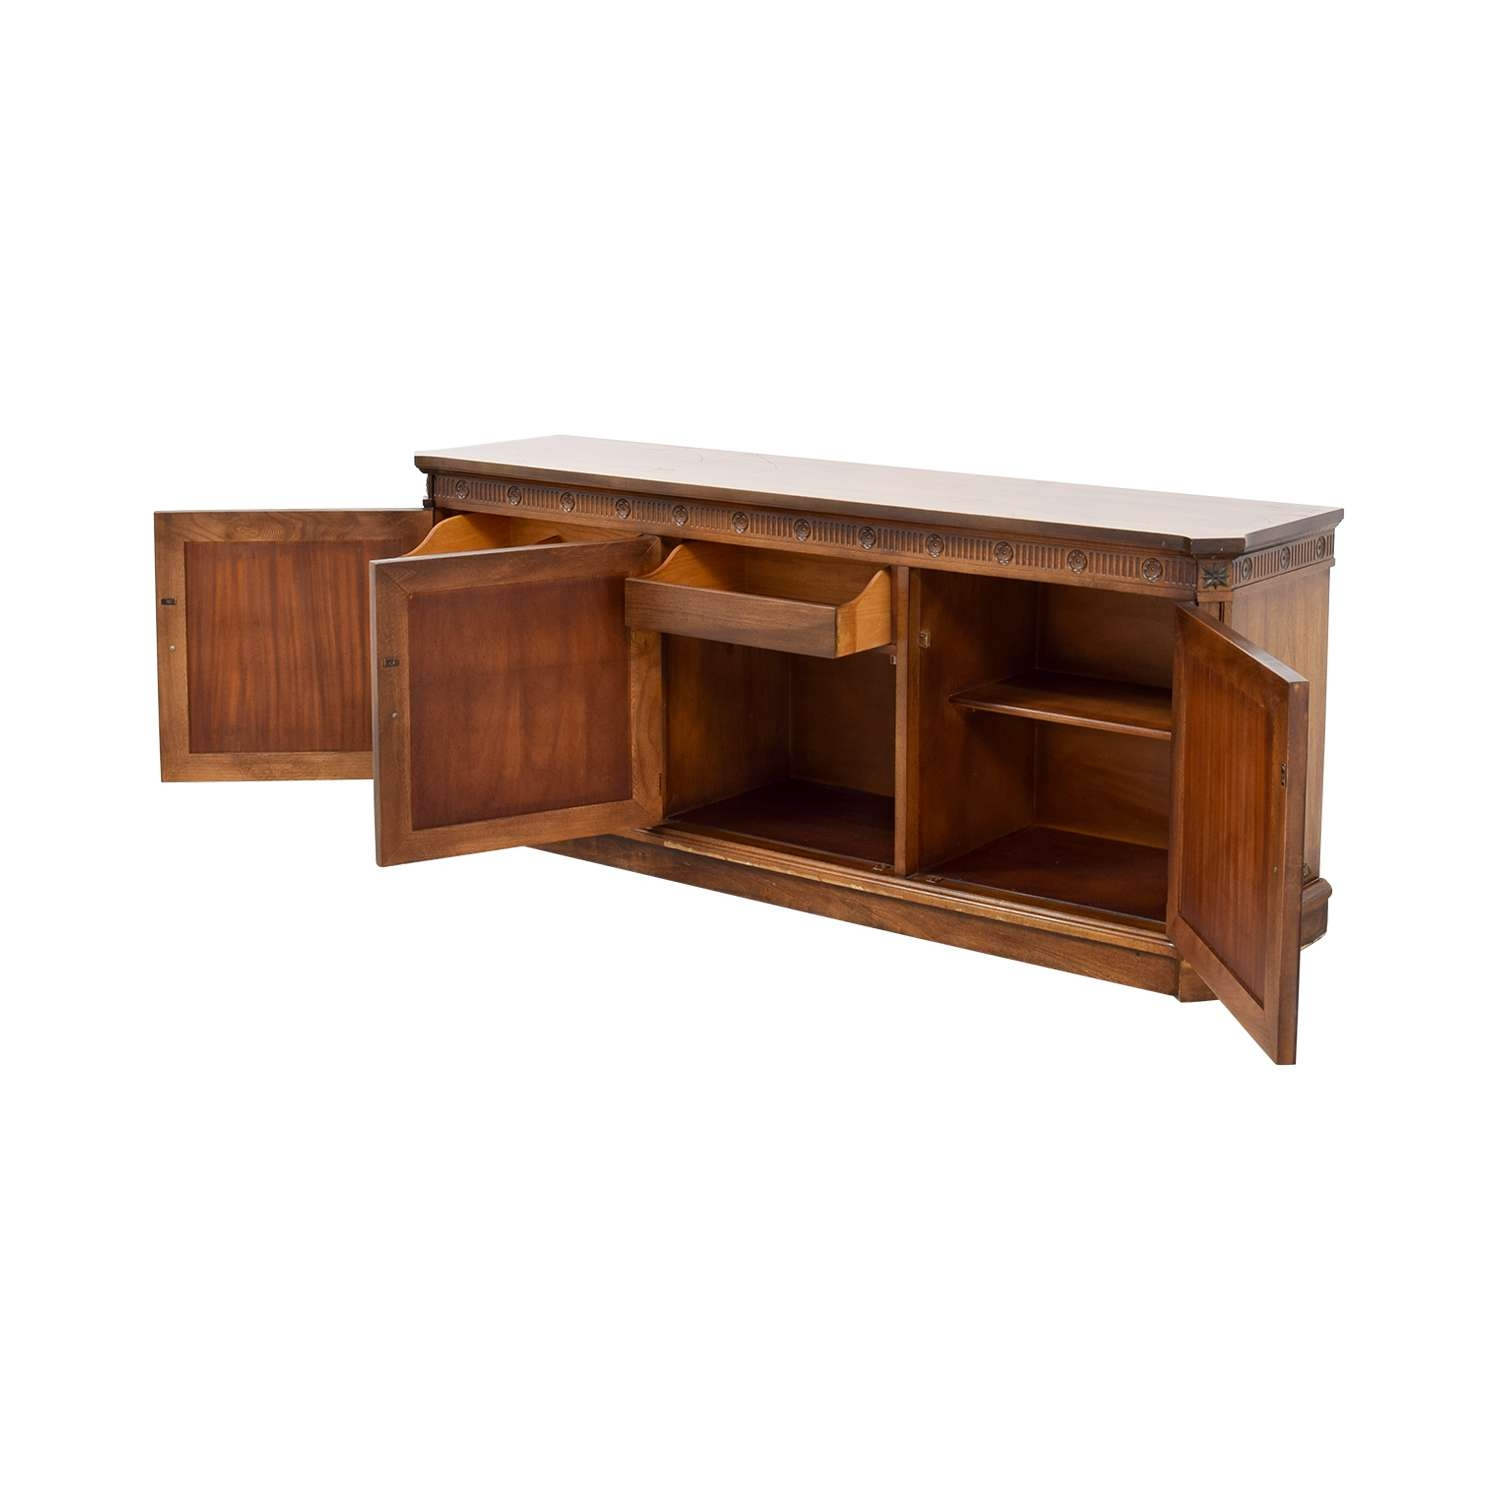 78% Off – Vintage Buffet Server / Storage Throughout Sideboards Buffet Servers (View 19 of 20)